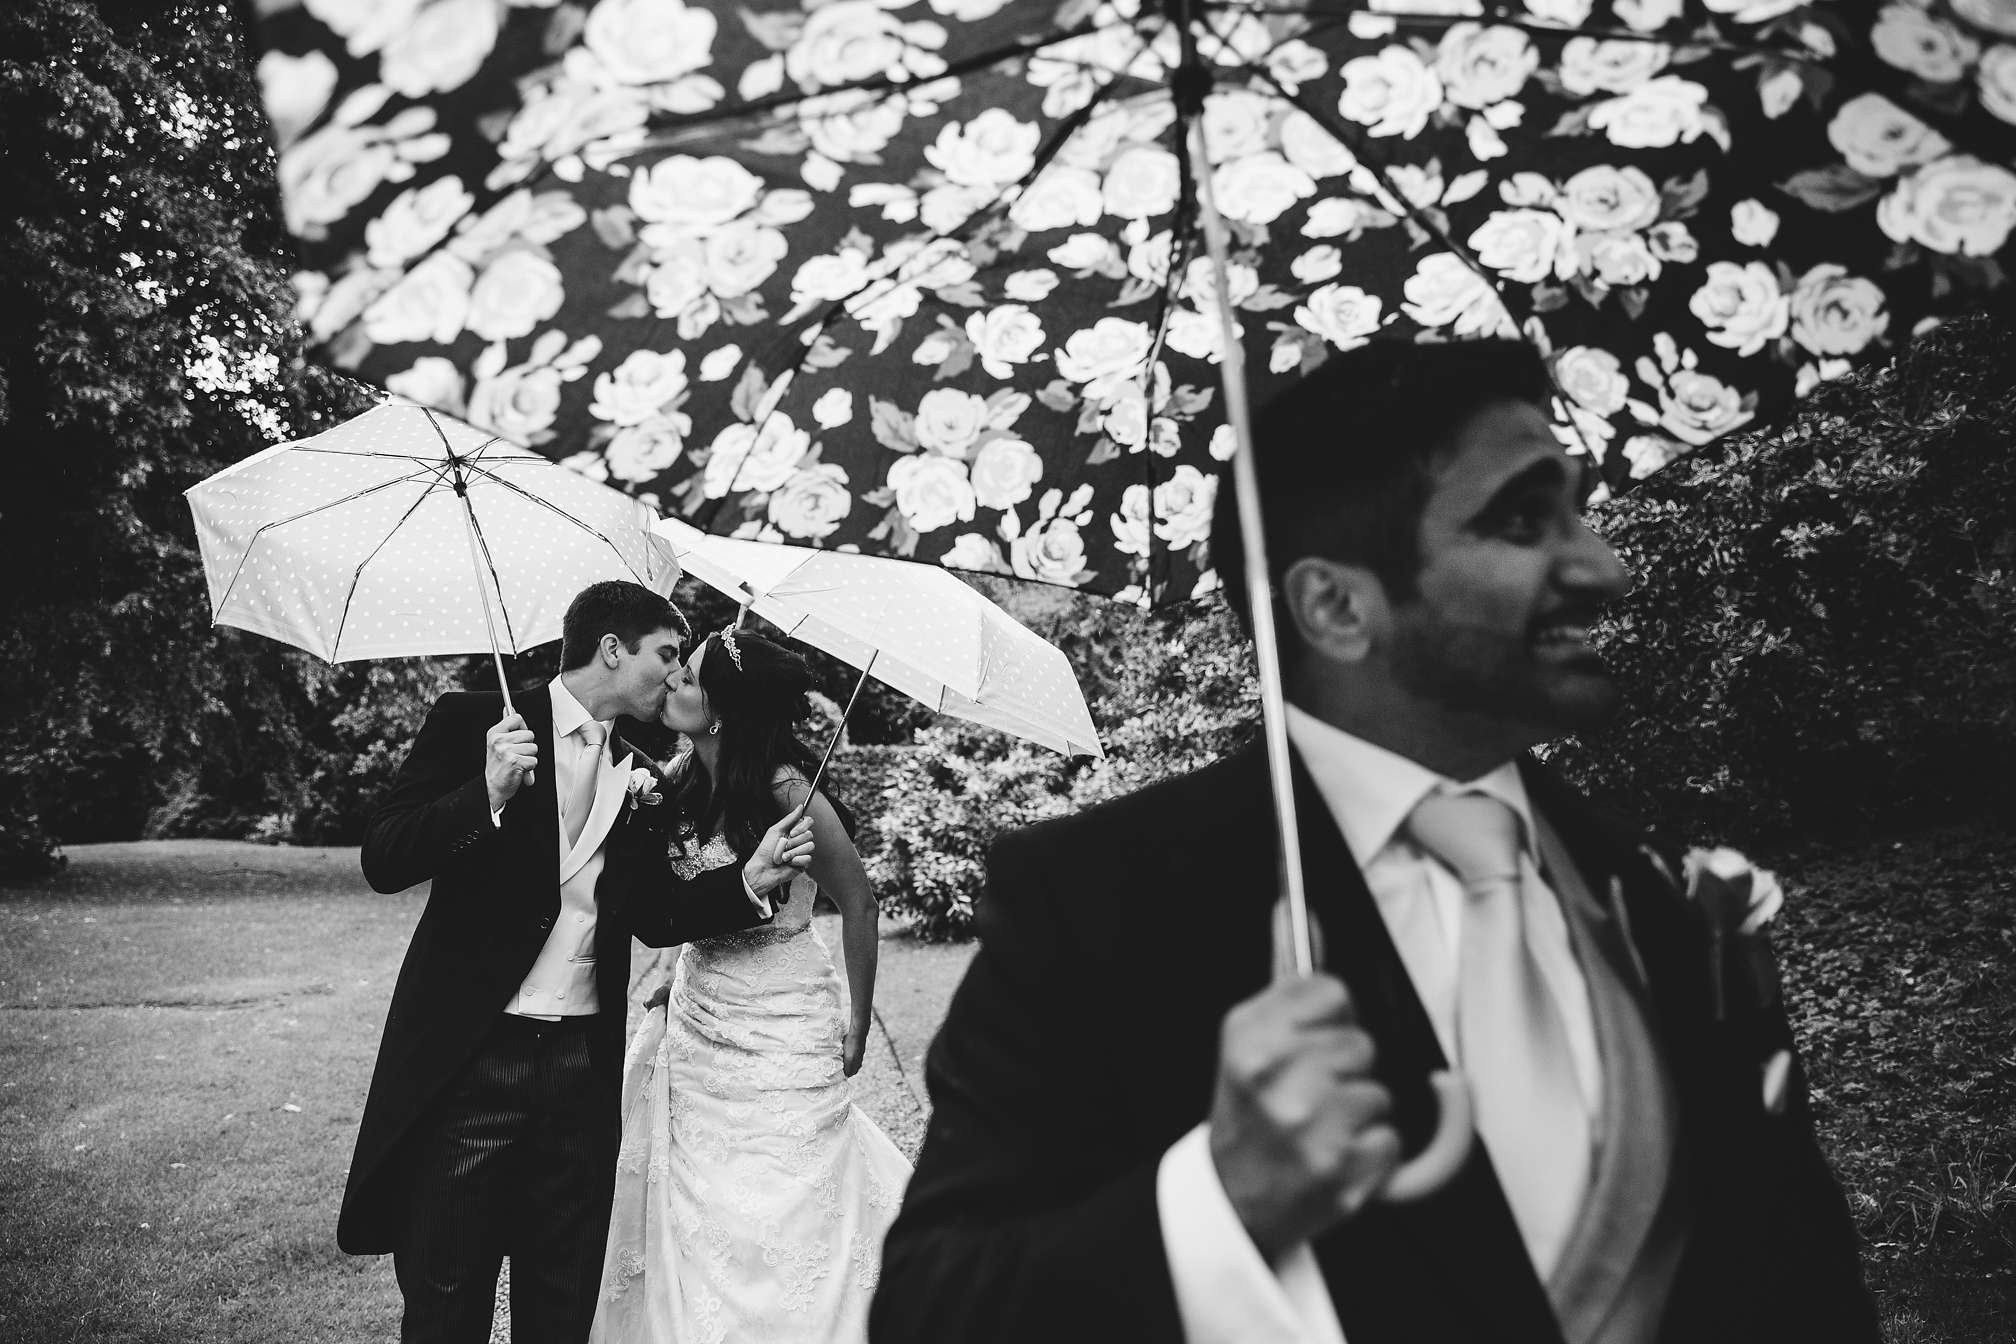 Rockingham Castle - Wet Rainy Wedding Award Winning Portrait